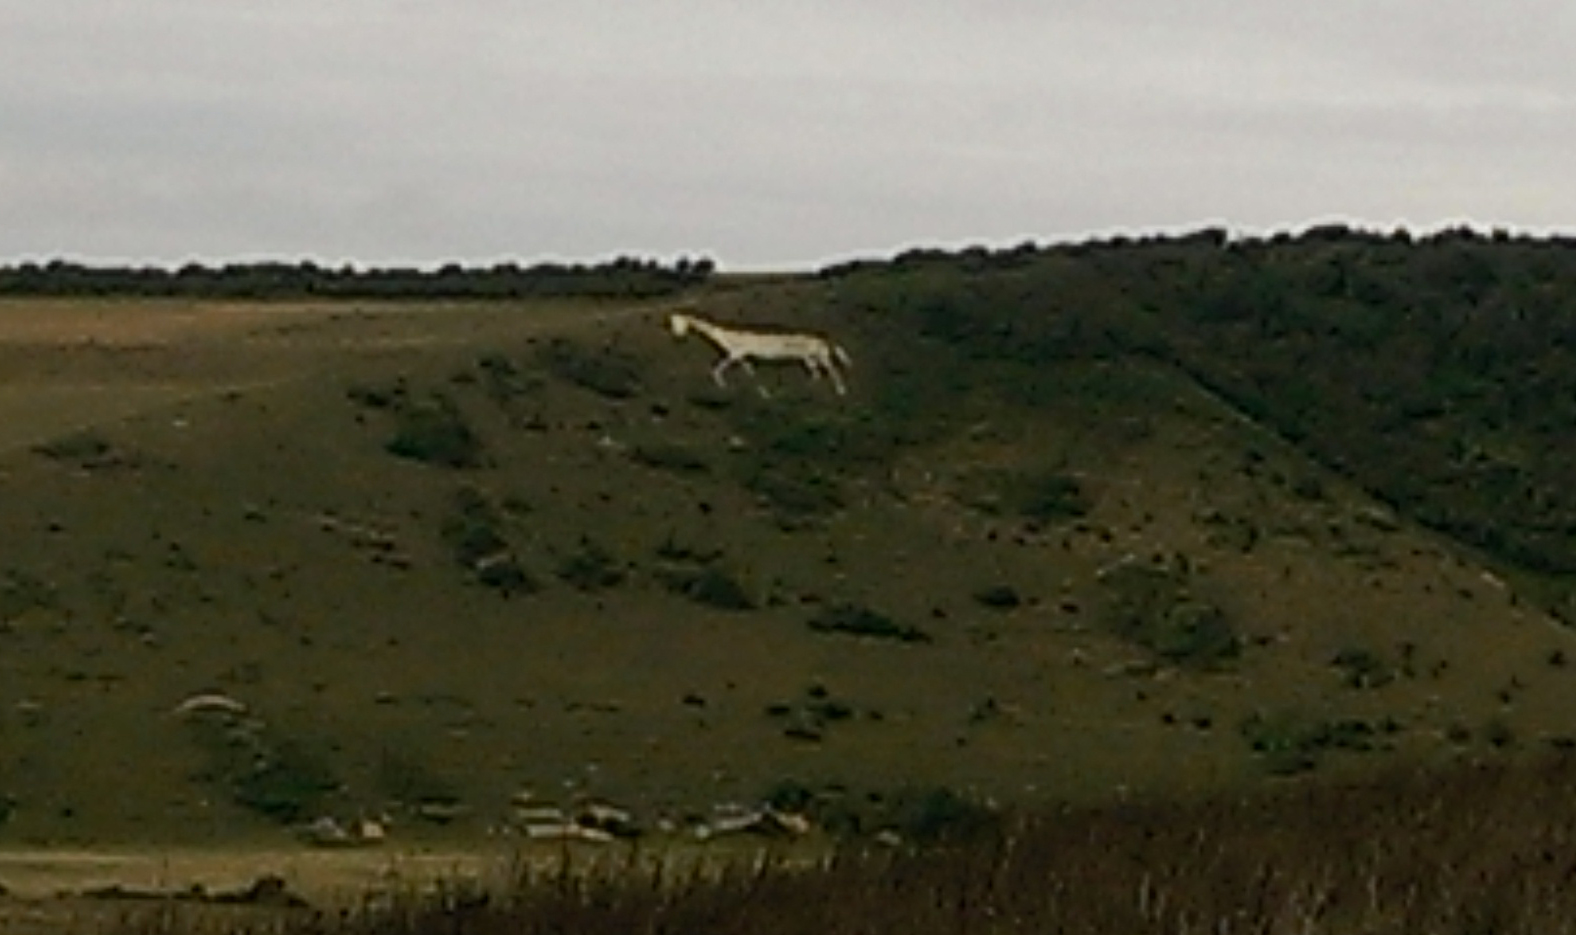 White Horse of Litlington